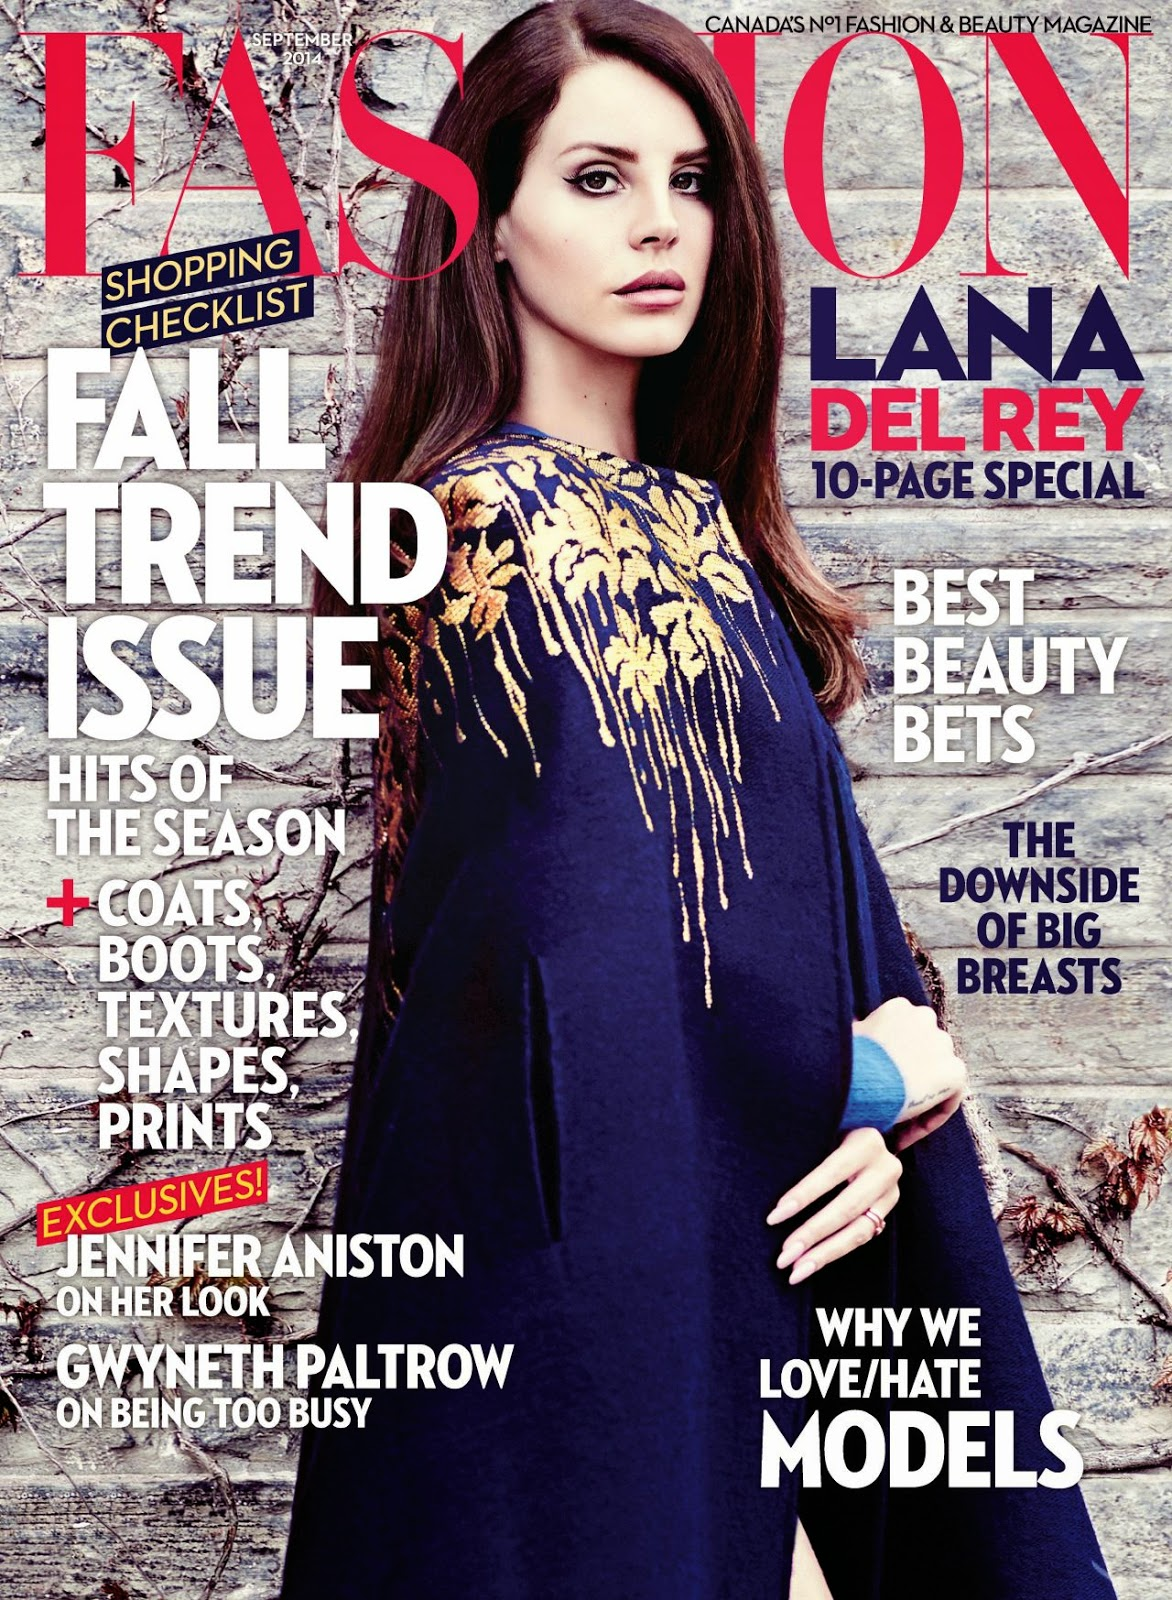 Lana Del Rey covers Fashion Magazine Canada September 2014